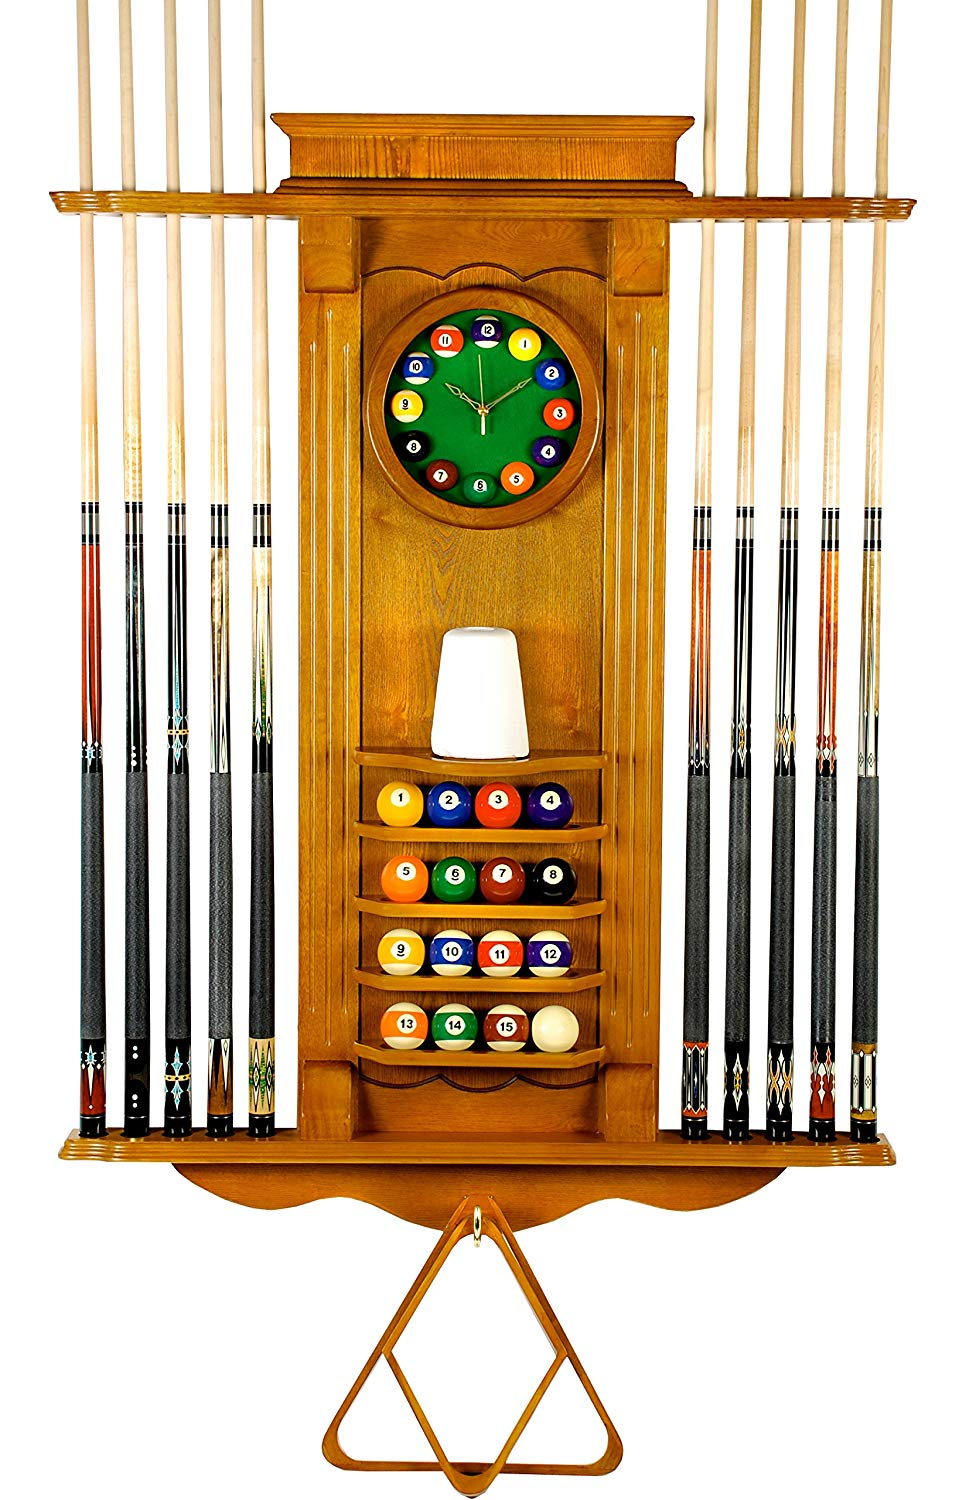 Iszy 10 Pool Cue Rack with Clock